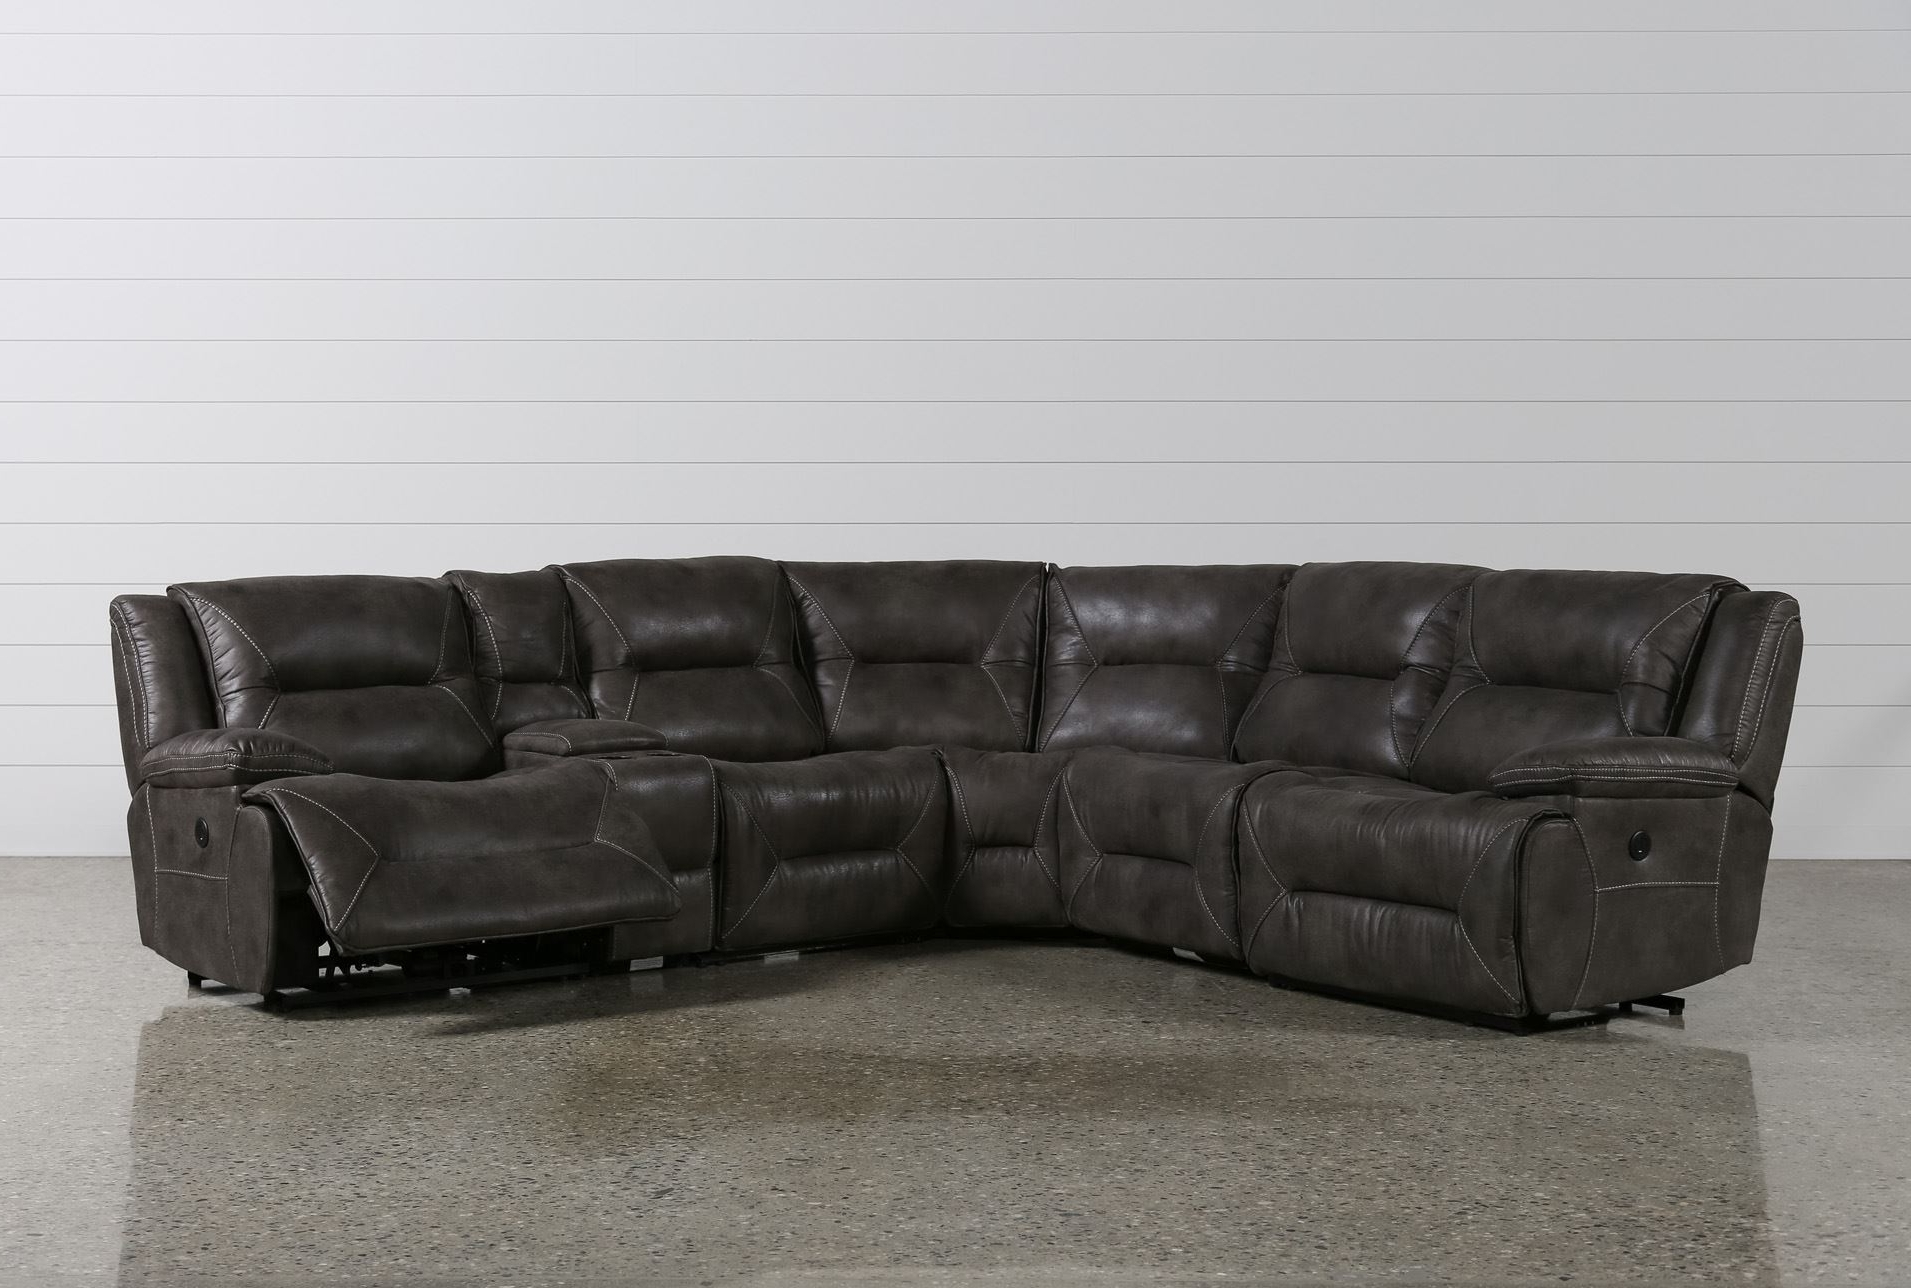 2019 Epic 6 Piece Leather Sectional Sofa 70 With Additional With 6 Regarding 6 Piece Leather Sectional Sofas (View 3 of 20)